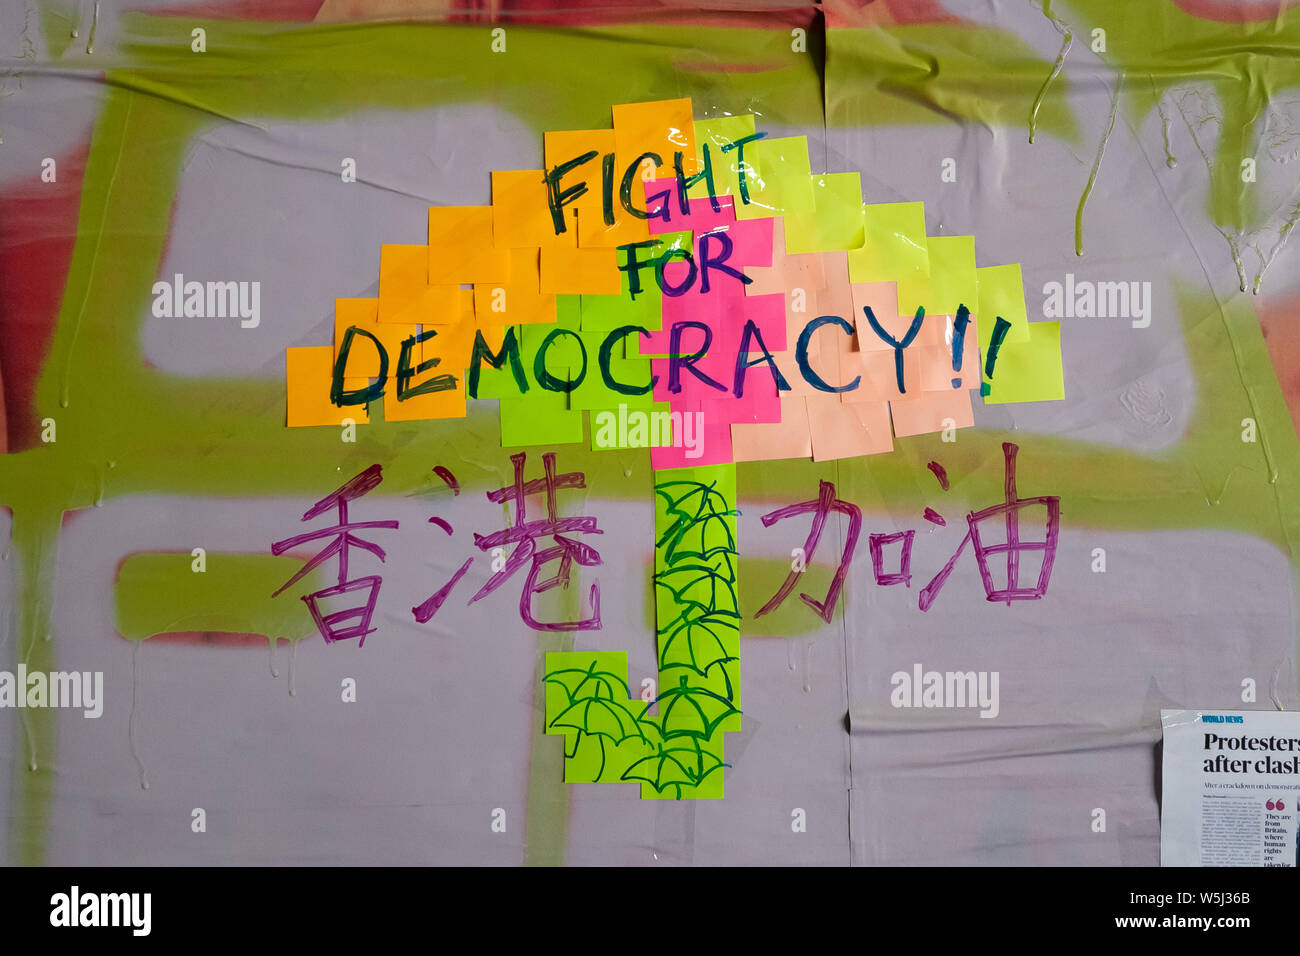 'Fight For Democracy' Hong Knong Umbrella Movement protest symbol in Shoreditch, London, UK. Stock Photo